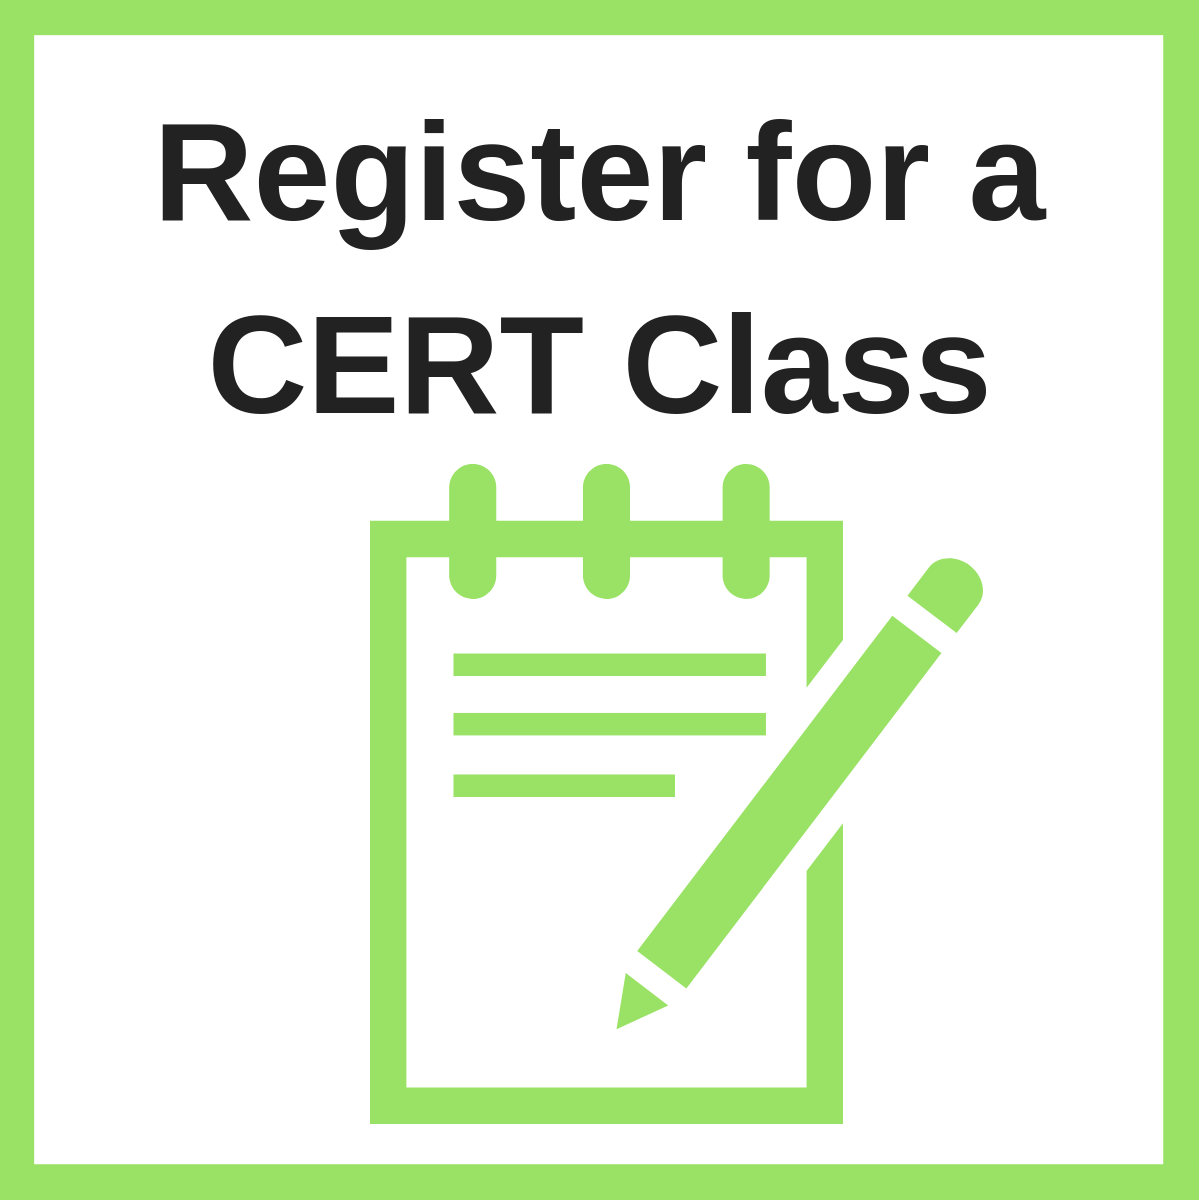 Click to register for an upcoming CERT class